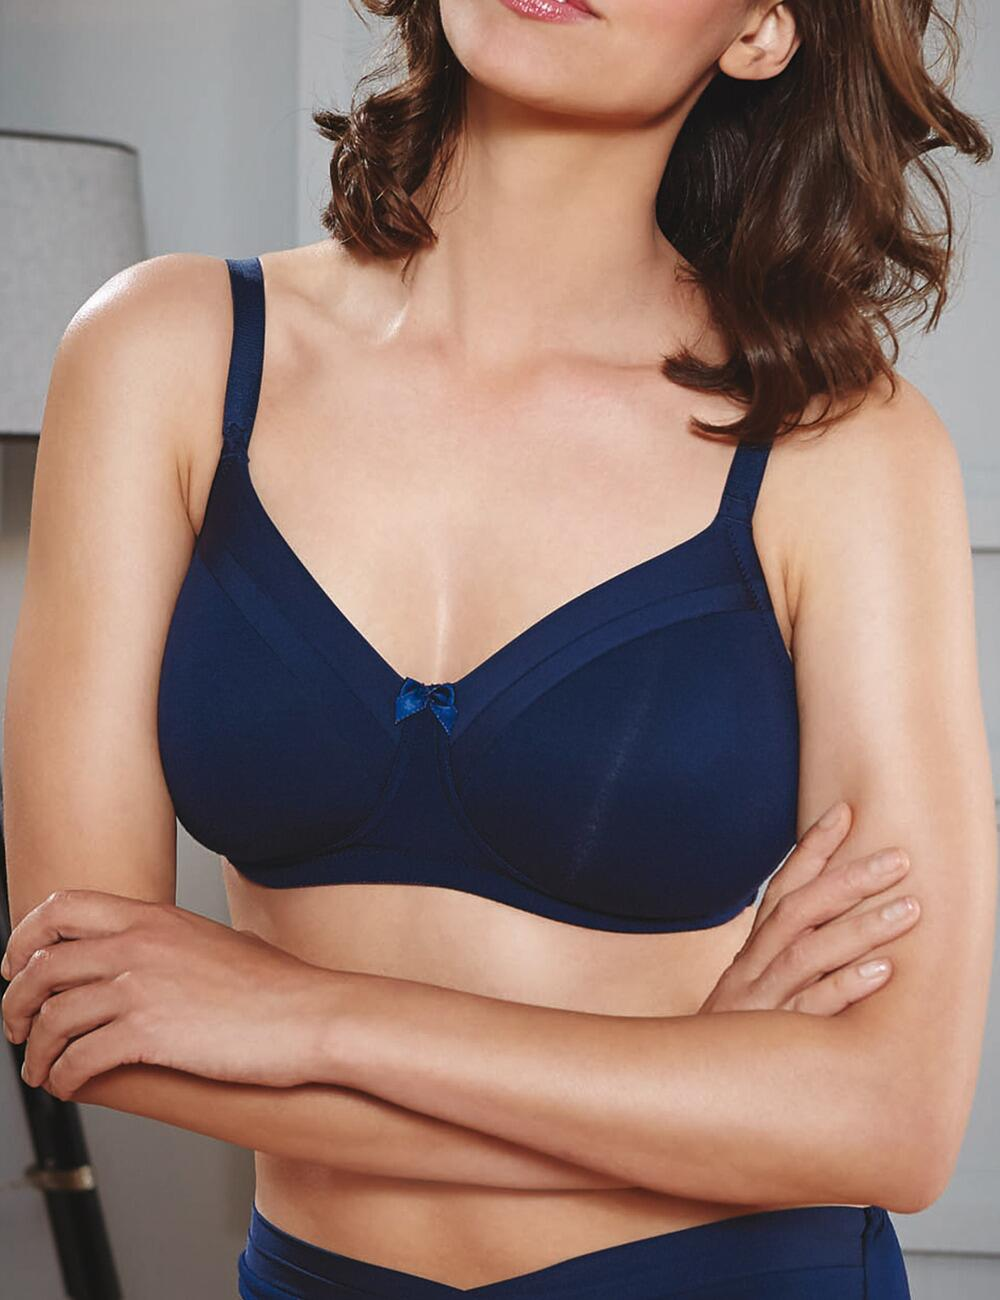 Royce Maisie Briefs Matching Briefs for Royce Maisie Mastectomy Bra